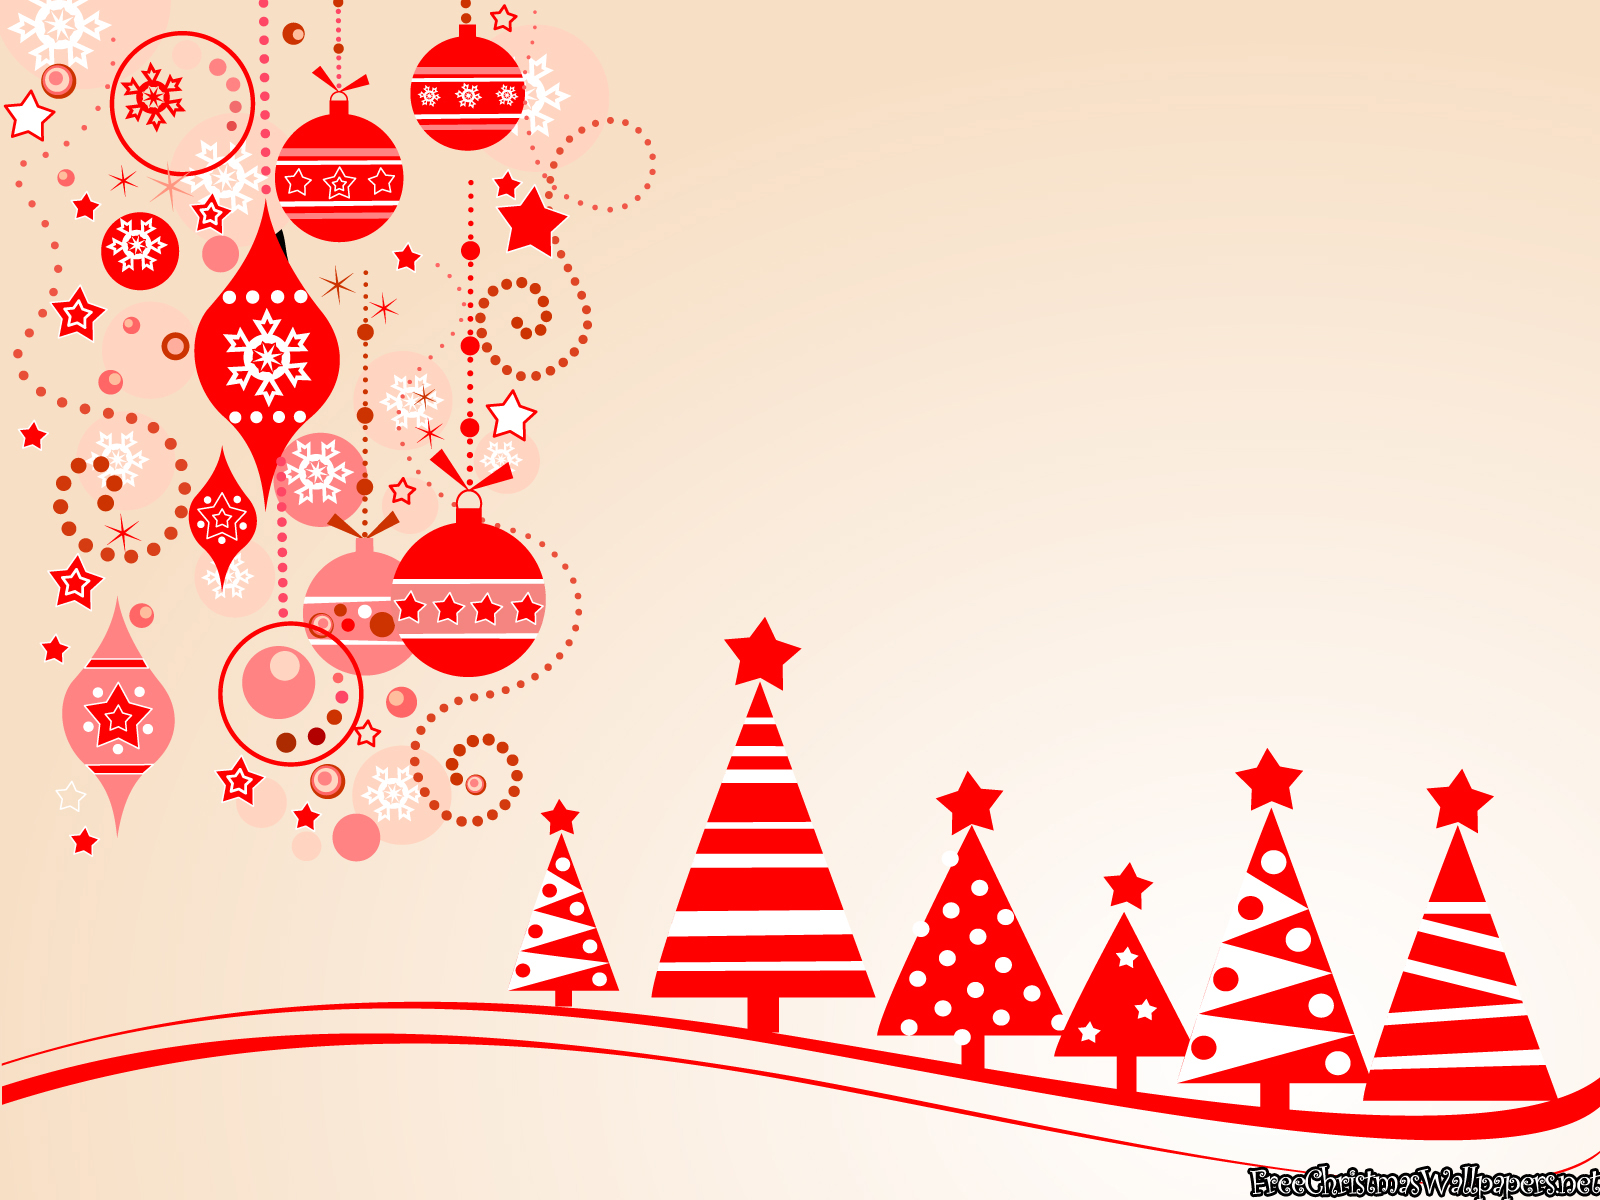 Christmas Background Clipart.Free Christmas Clip Art Backgrounds Look At Clip Art